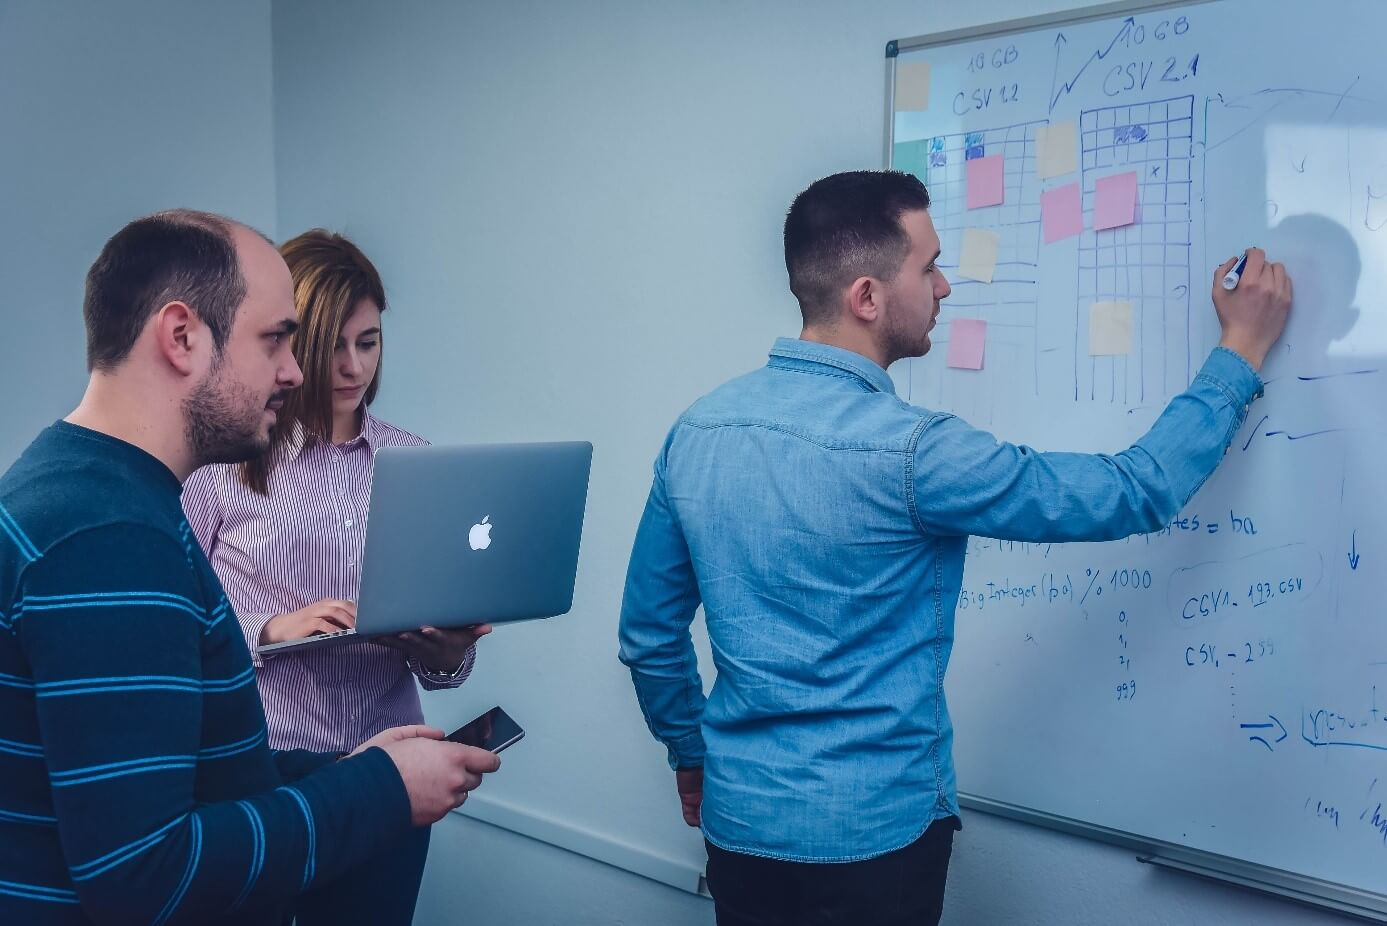 MuleSoft Through the Eyes of ⋮IWConnect's Mule team, scale growth, focus on improvement